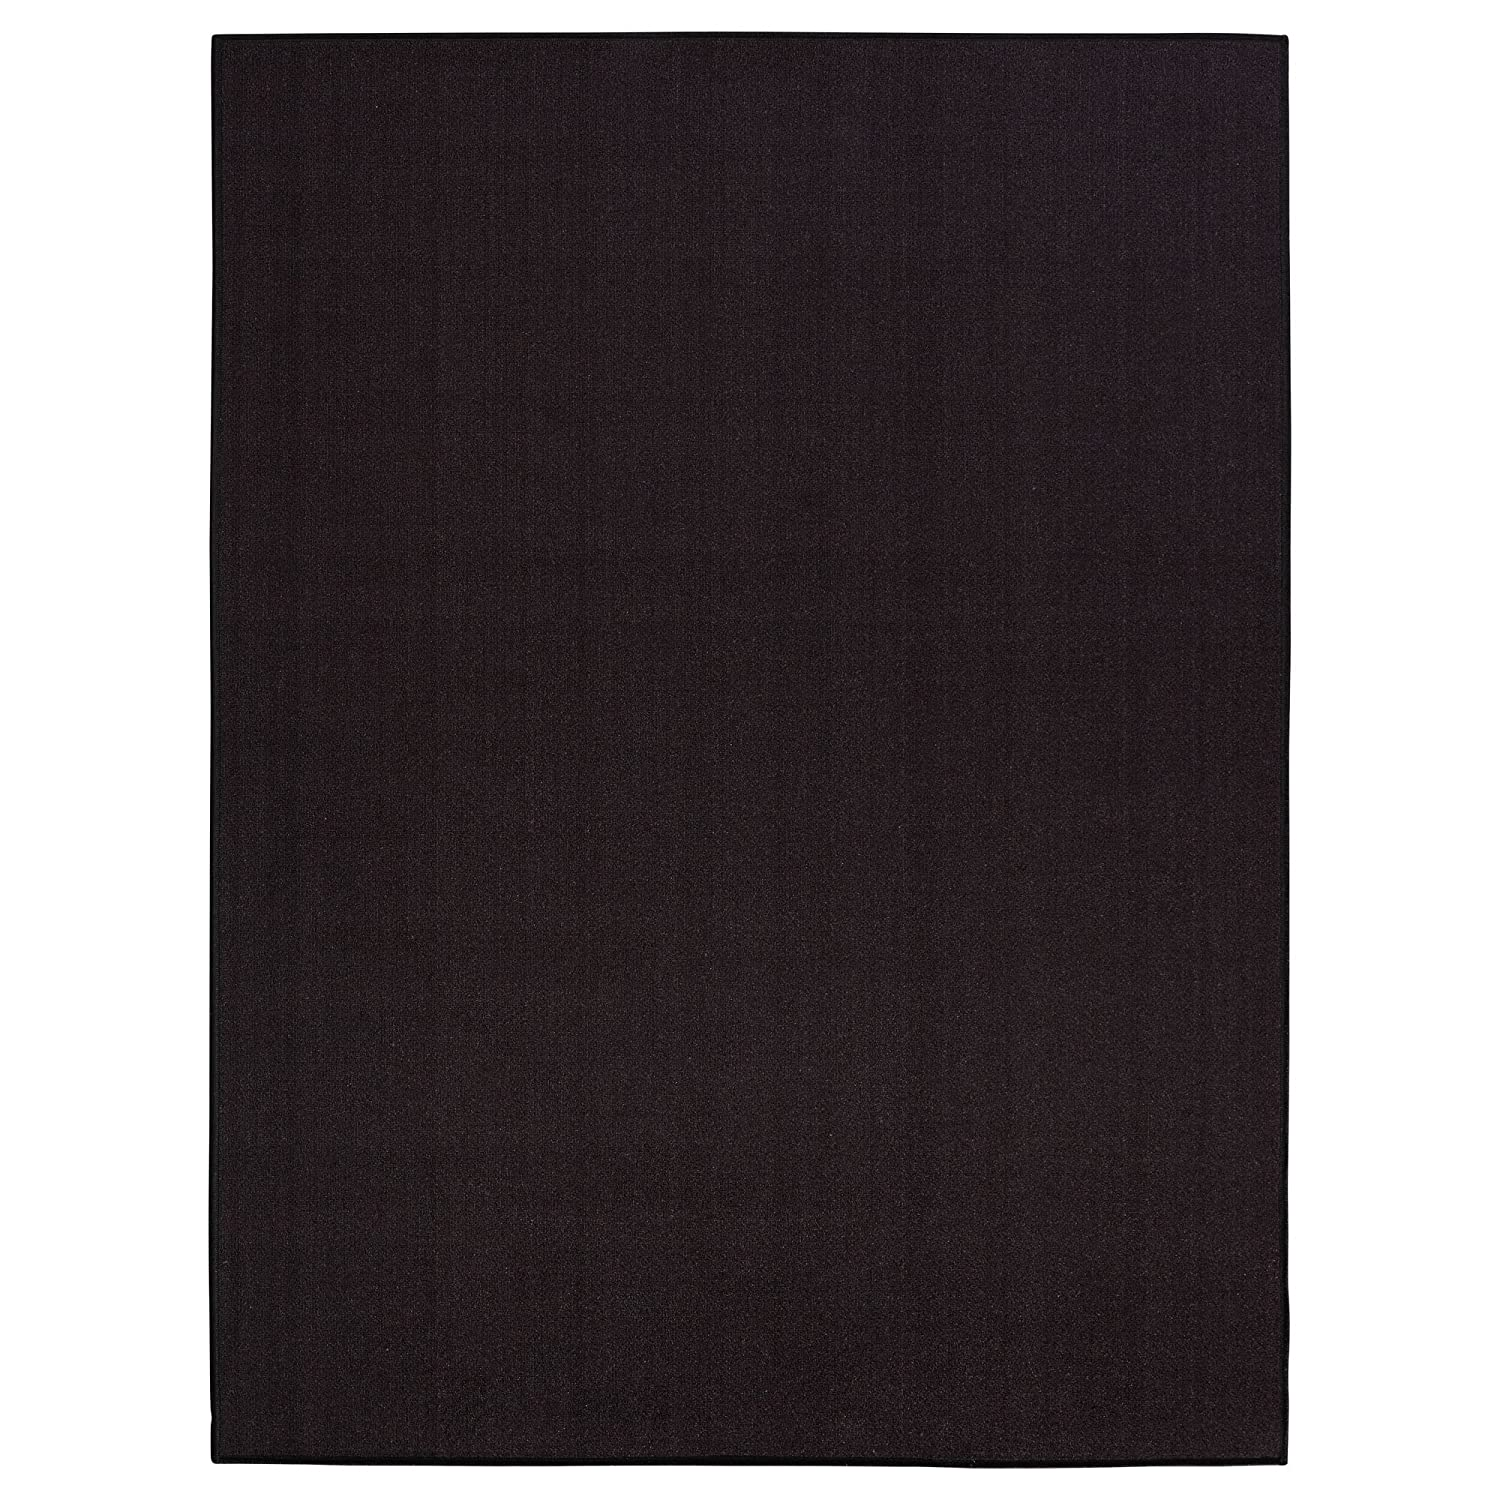 Black Sweet Home Stores Clifton Collection Solid Design Rubberback Runner Rug